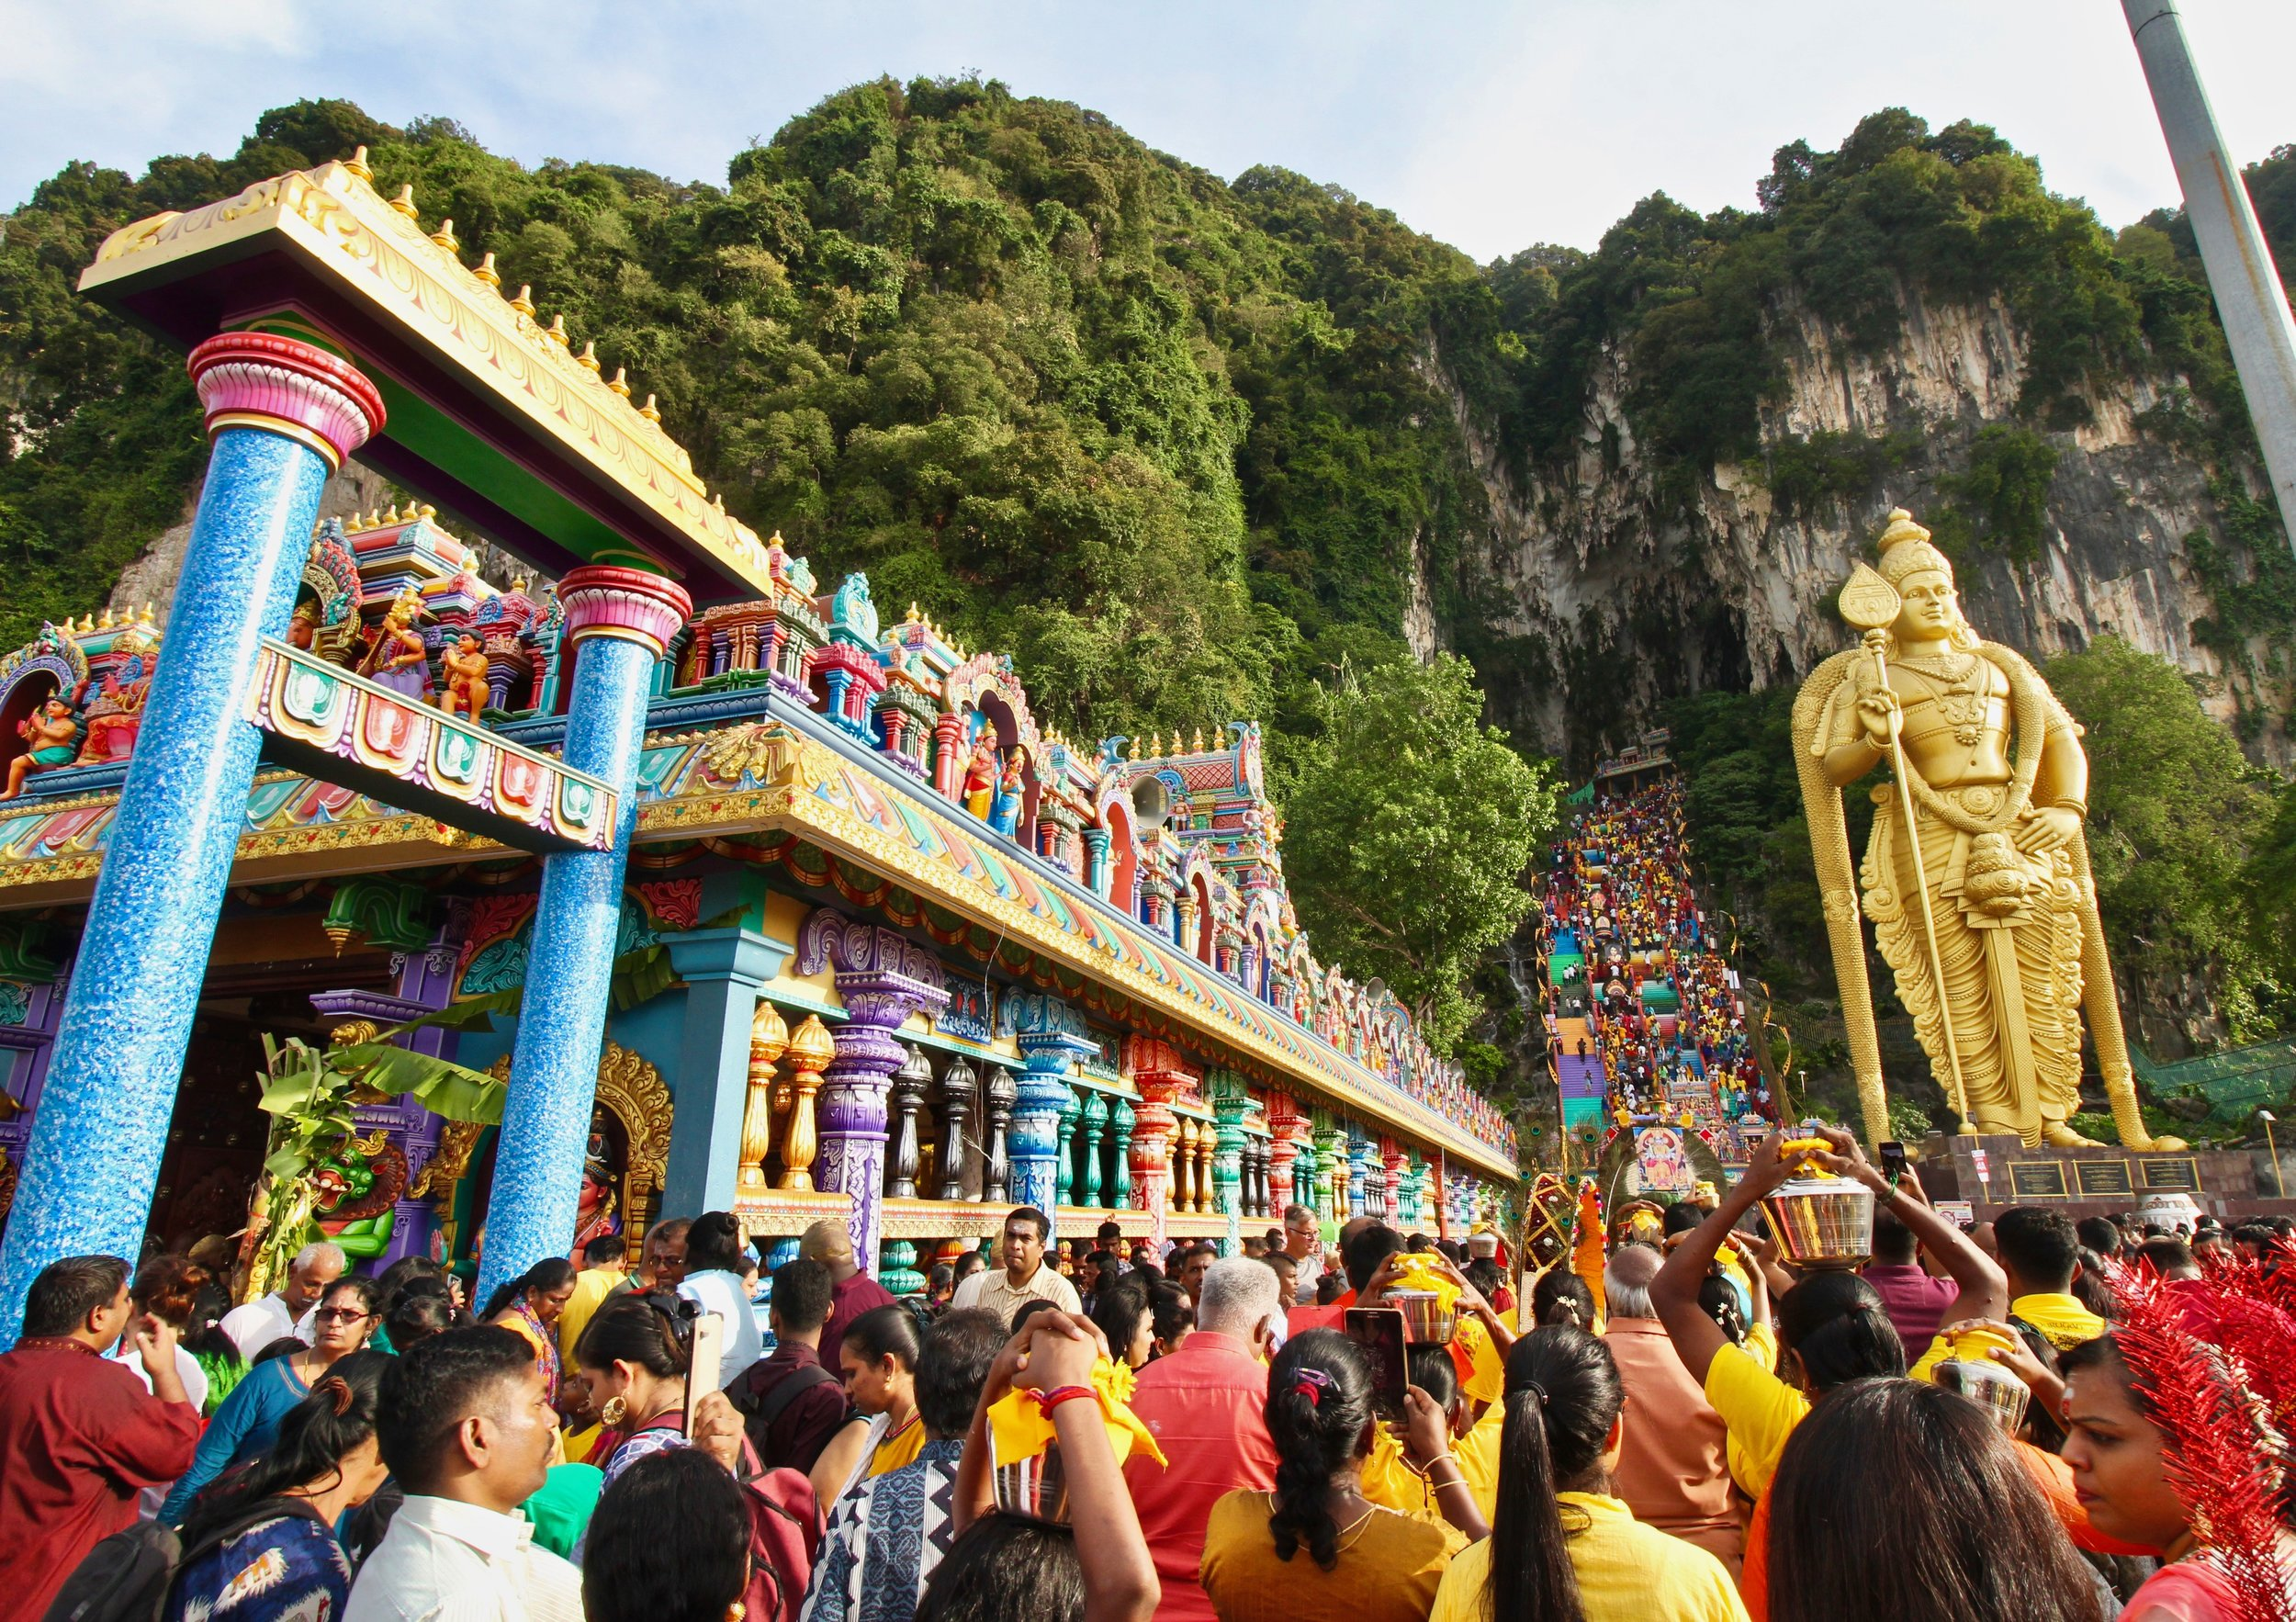 The crowd begins to thicken as it approaches the statue of Lord Murugan, before squeezing tightly through the entrance to the stairs.